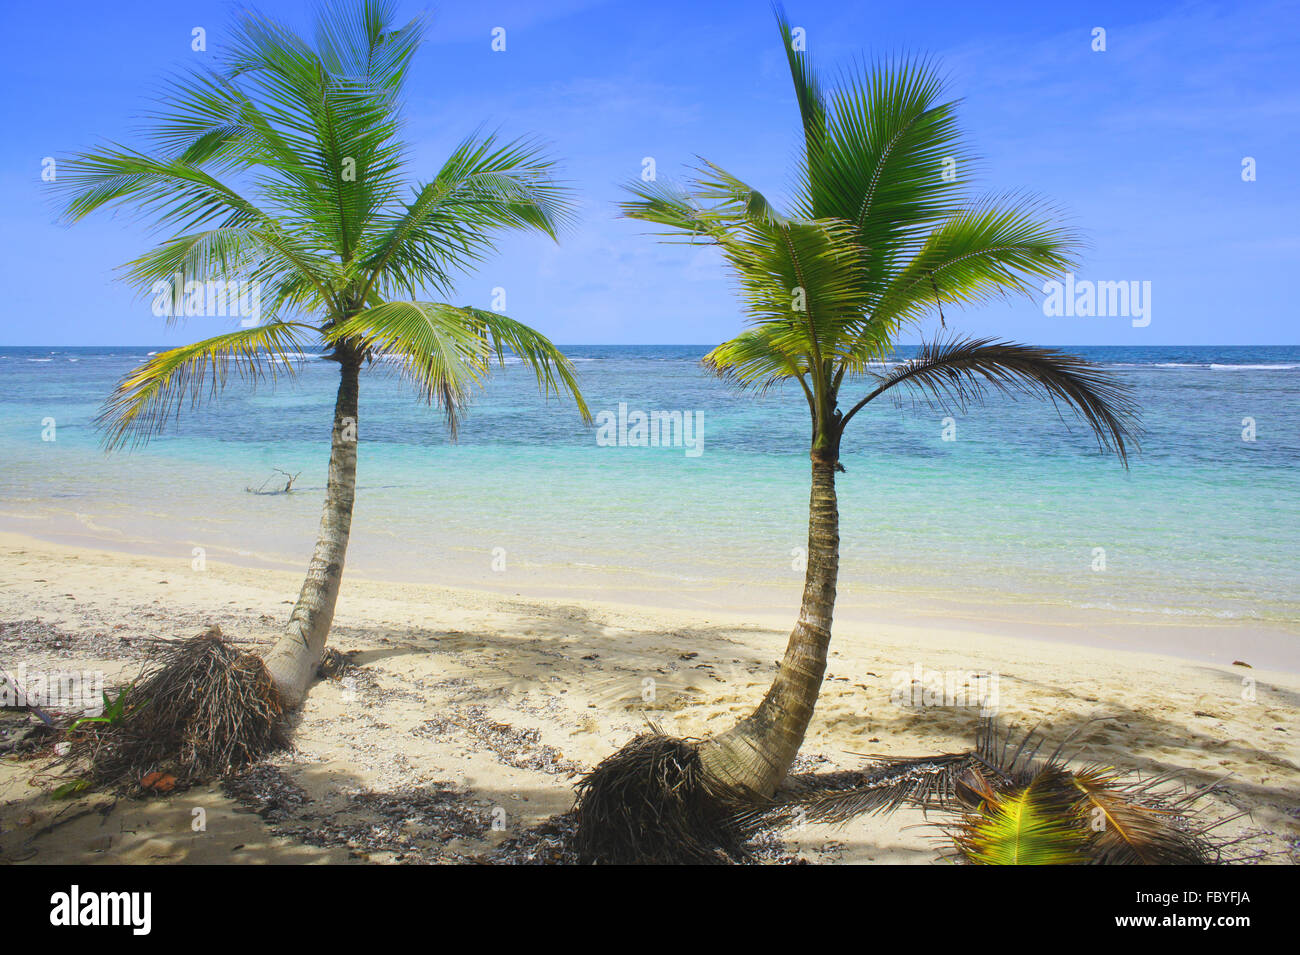 palm leaf at caribbean beach - Stock Image